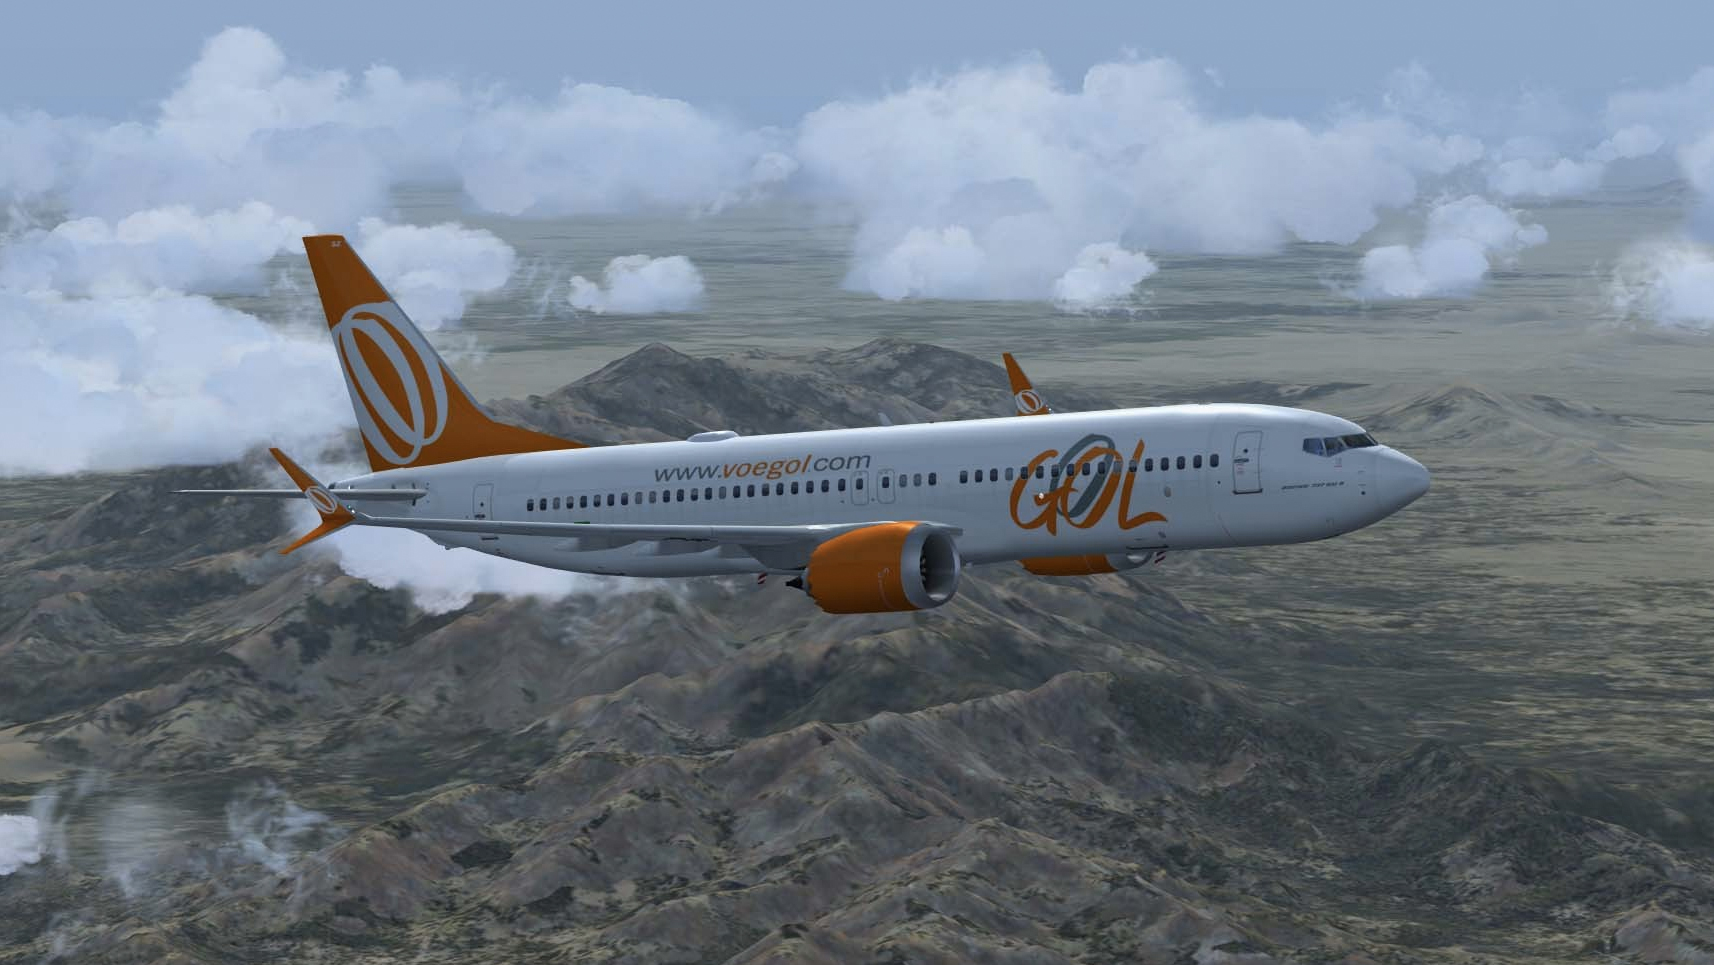 Voegol Airlines